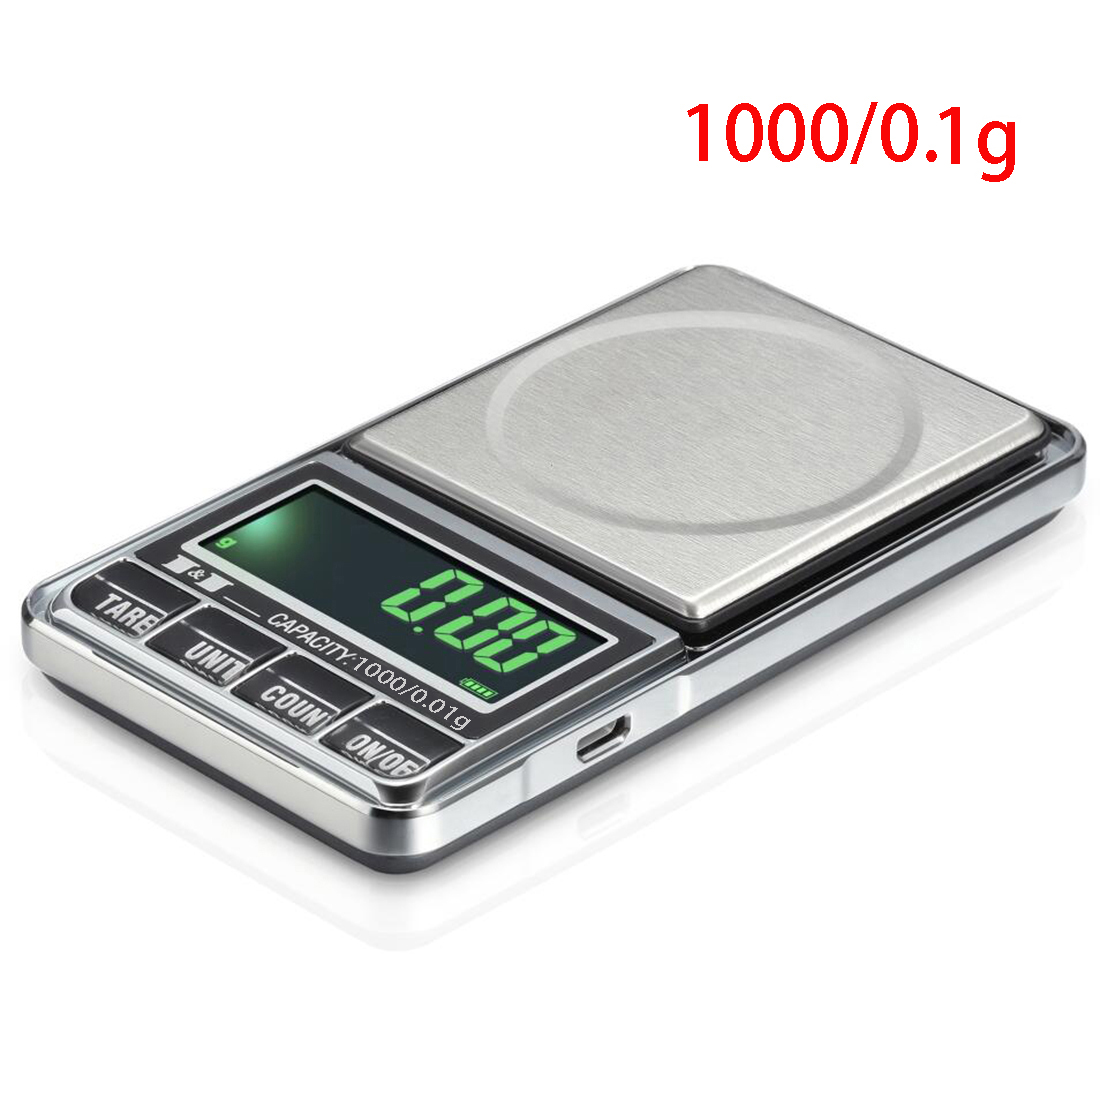 New jewelry scales weigh digital lcd display electronic for 0 1g kitchen scales